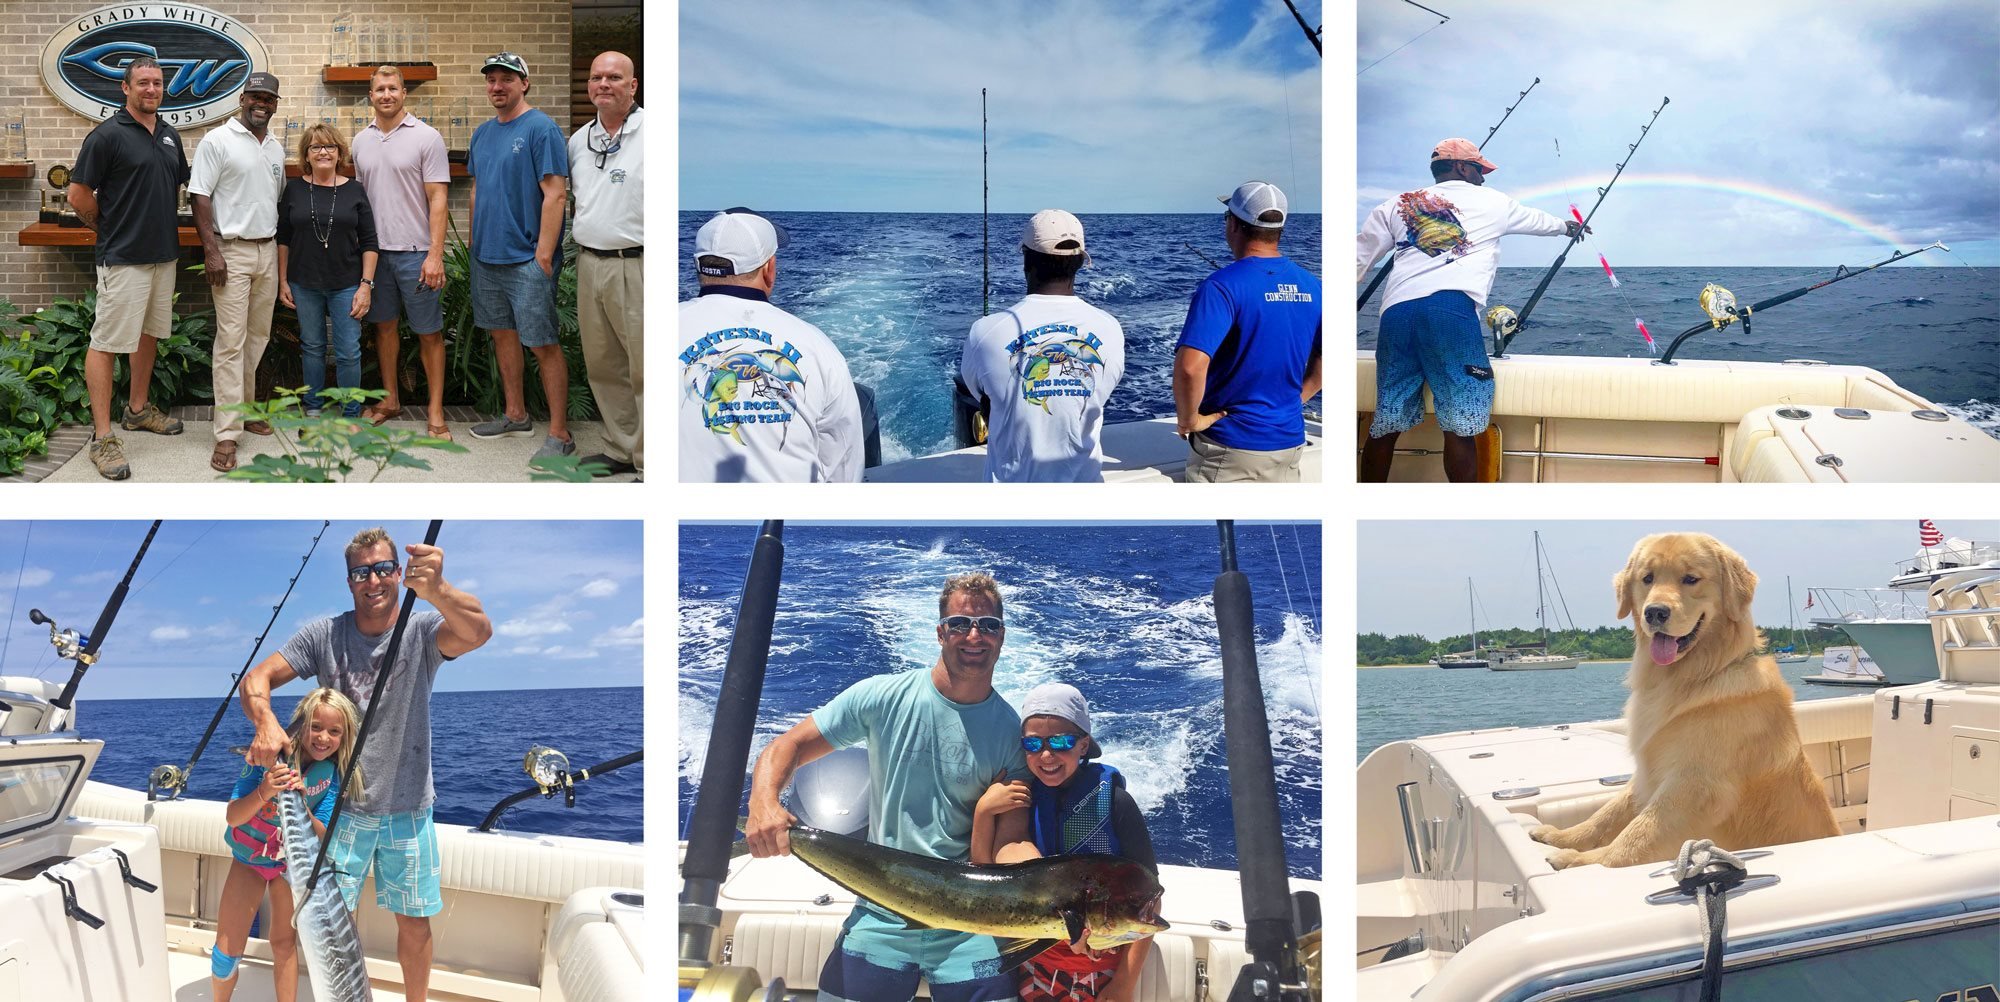 Fishing with family, friends and Grady Buddies on the Katessa II